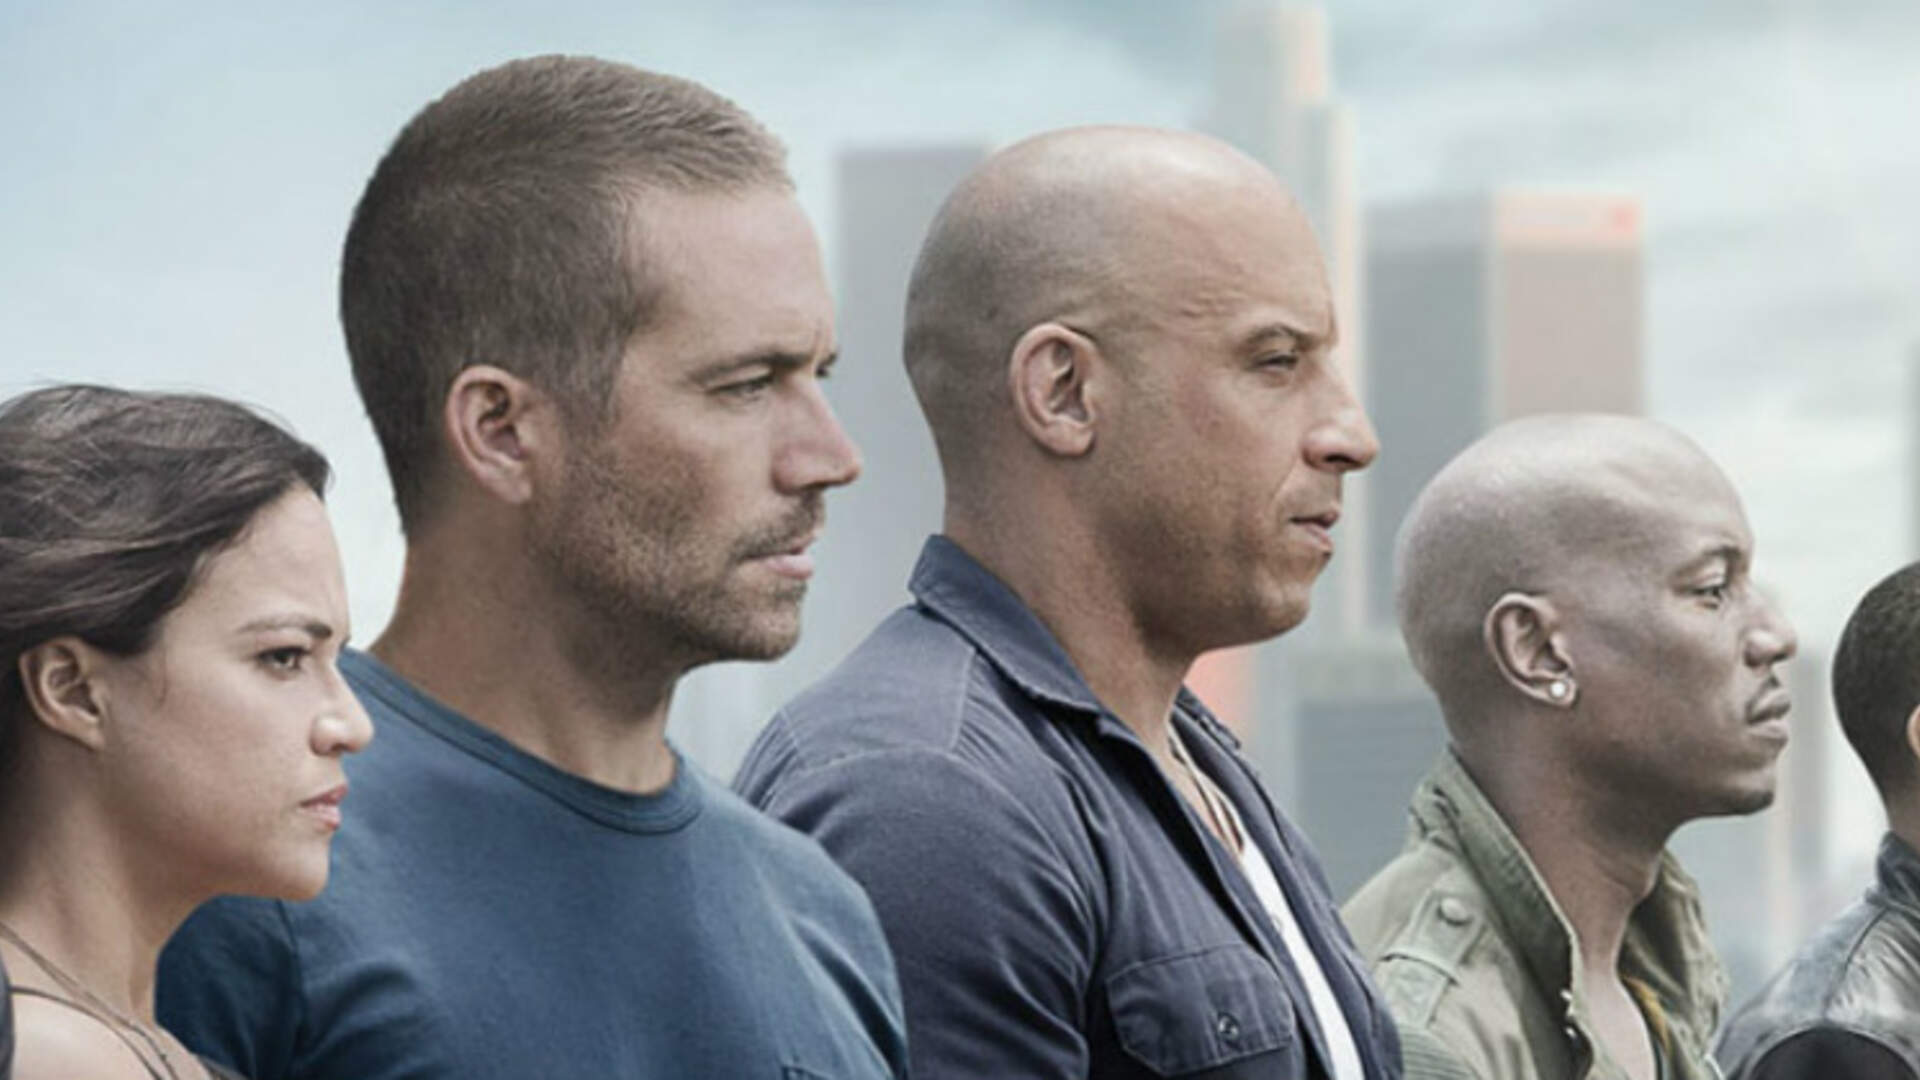 Forza Features Free Fast & Furious DLC: A New Way Do Movie Tie-Ins